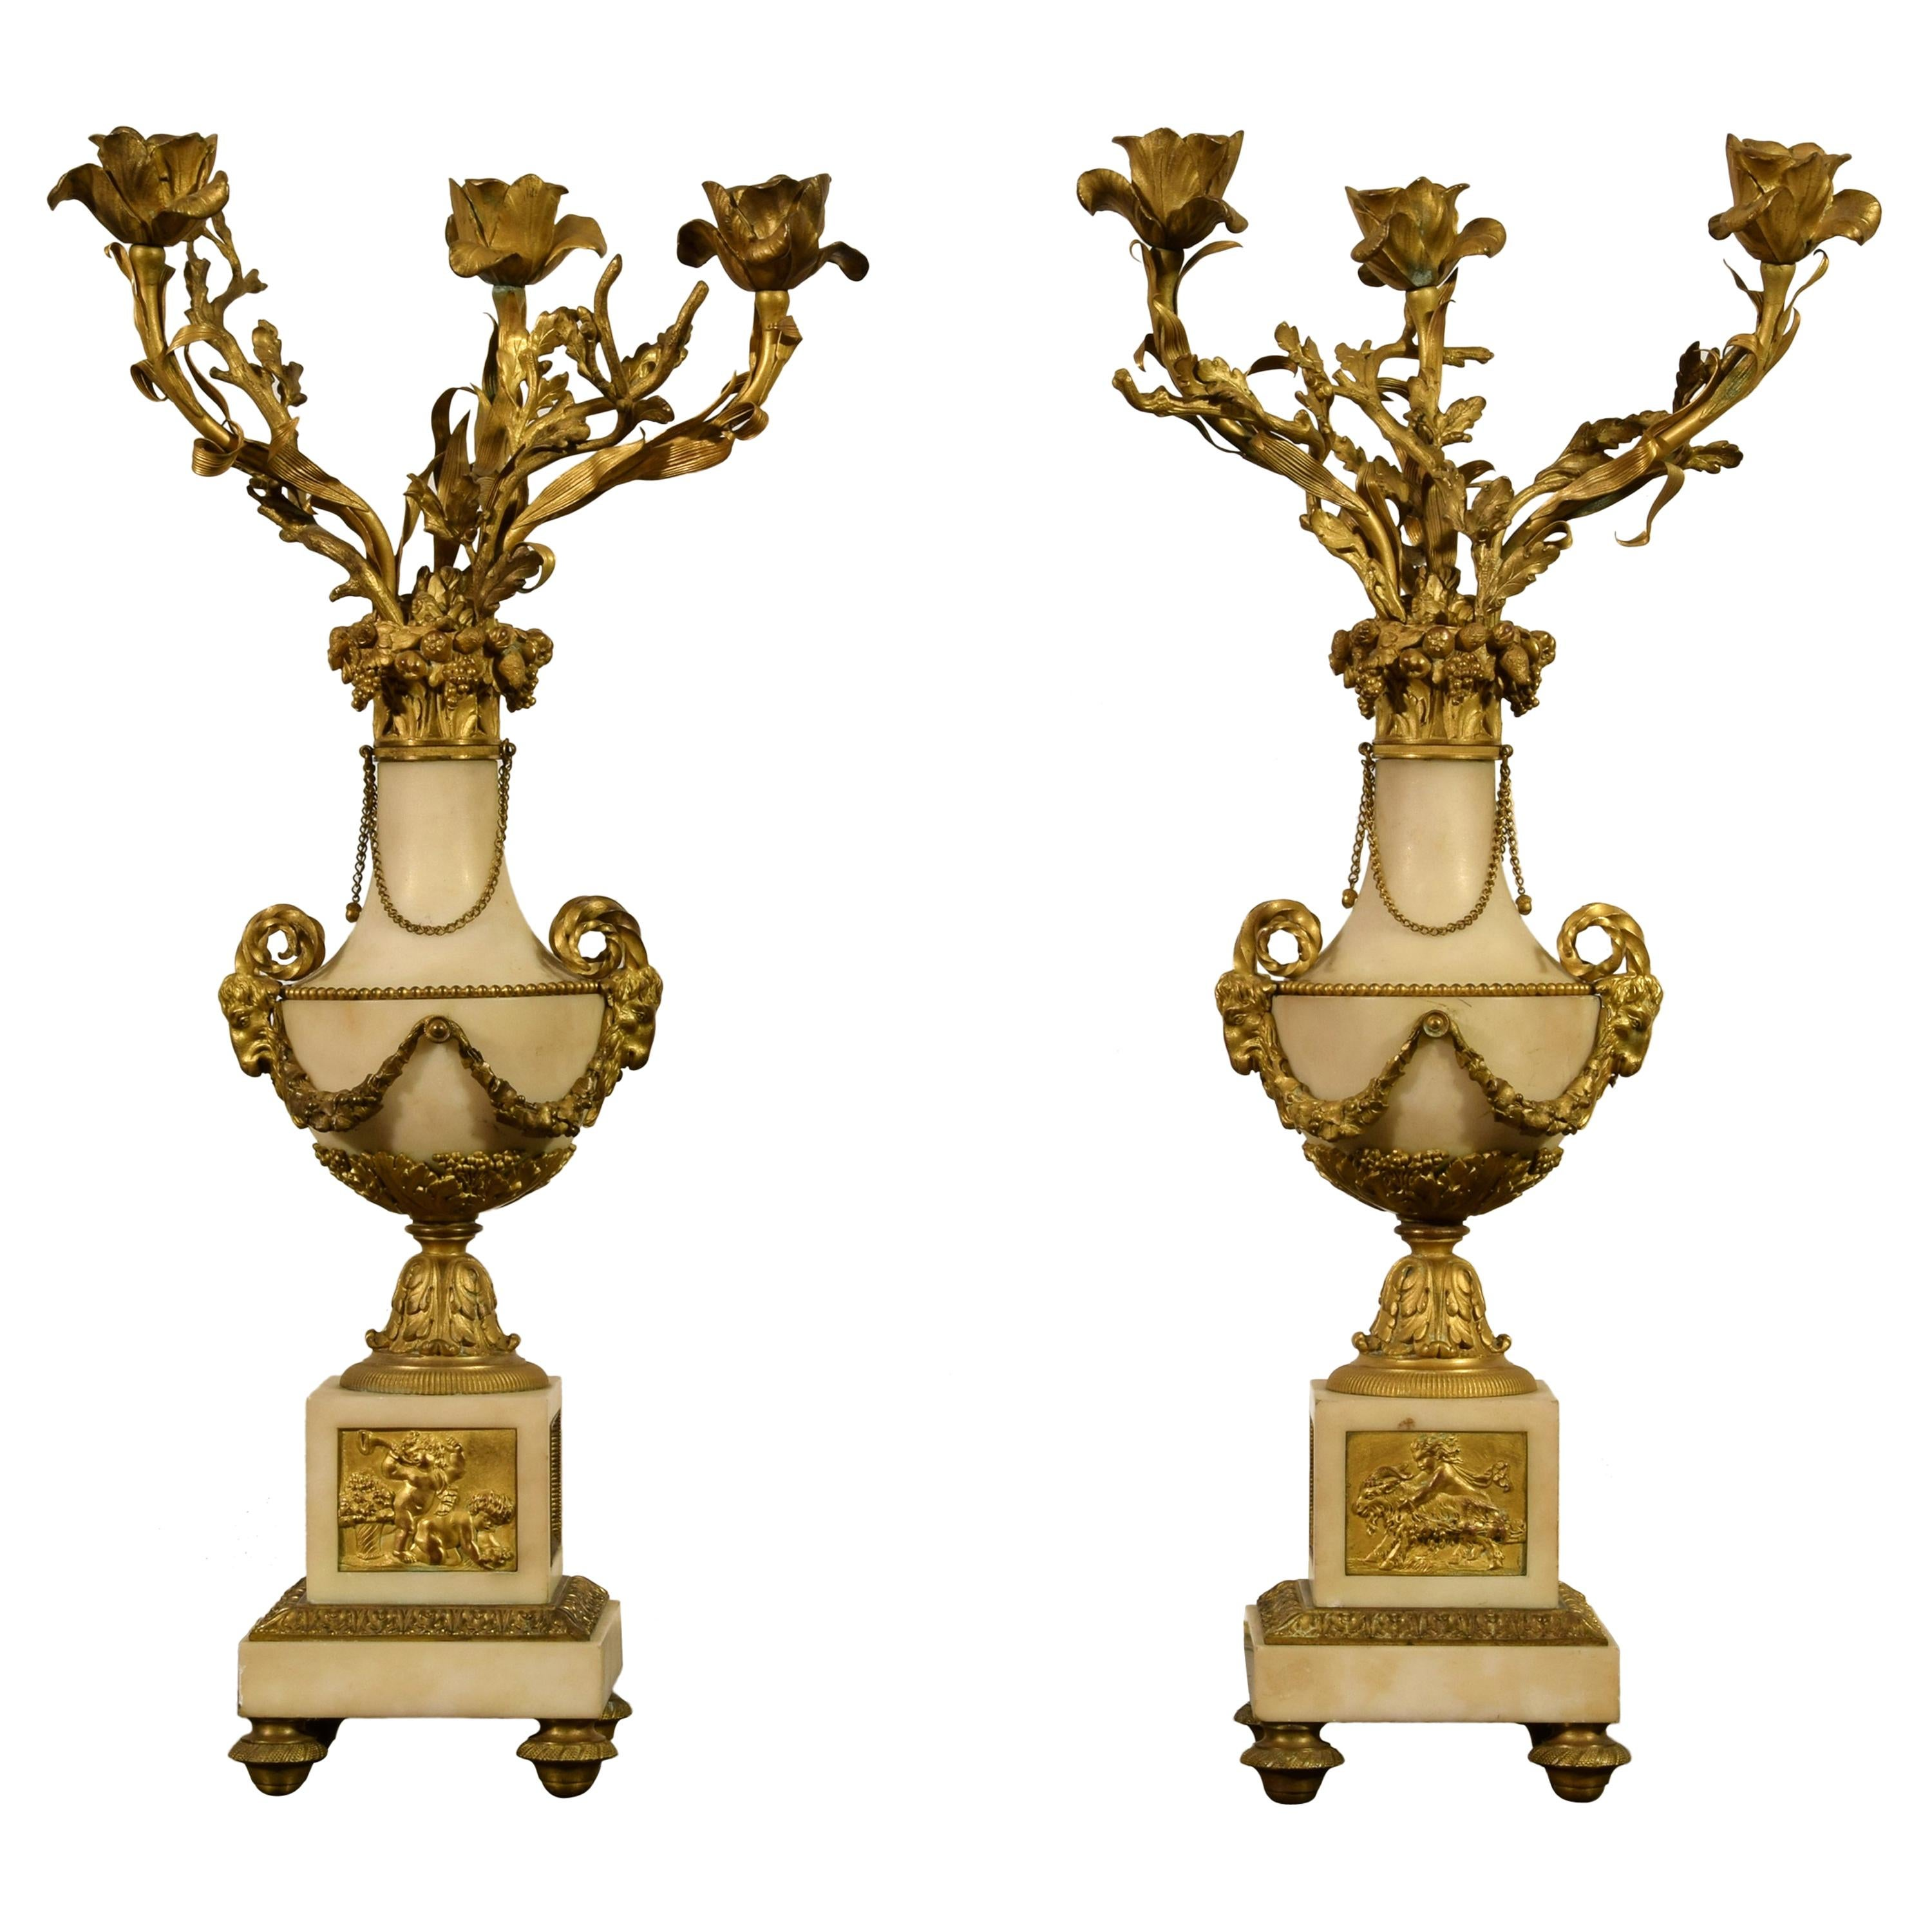 19th Century, Pair of French Gilt Bronze and Marble Candelabra